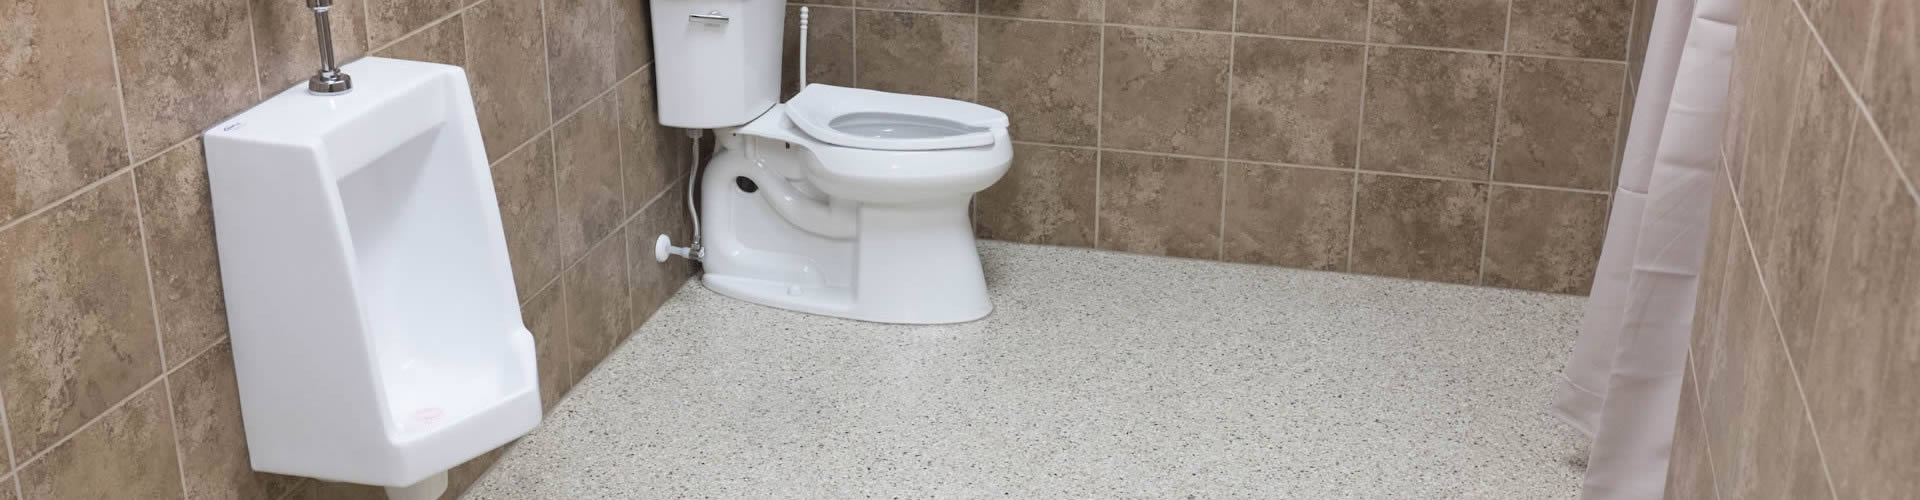 COMMERCIAL AND OFFICE BATHROOMS